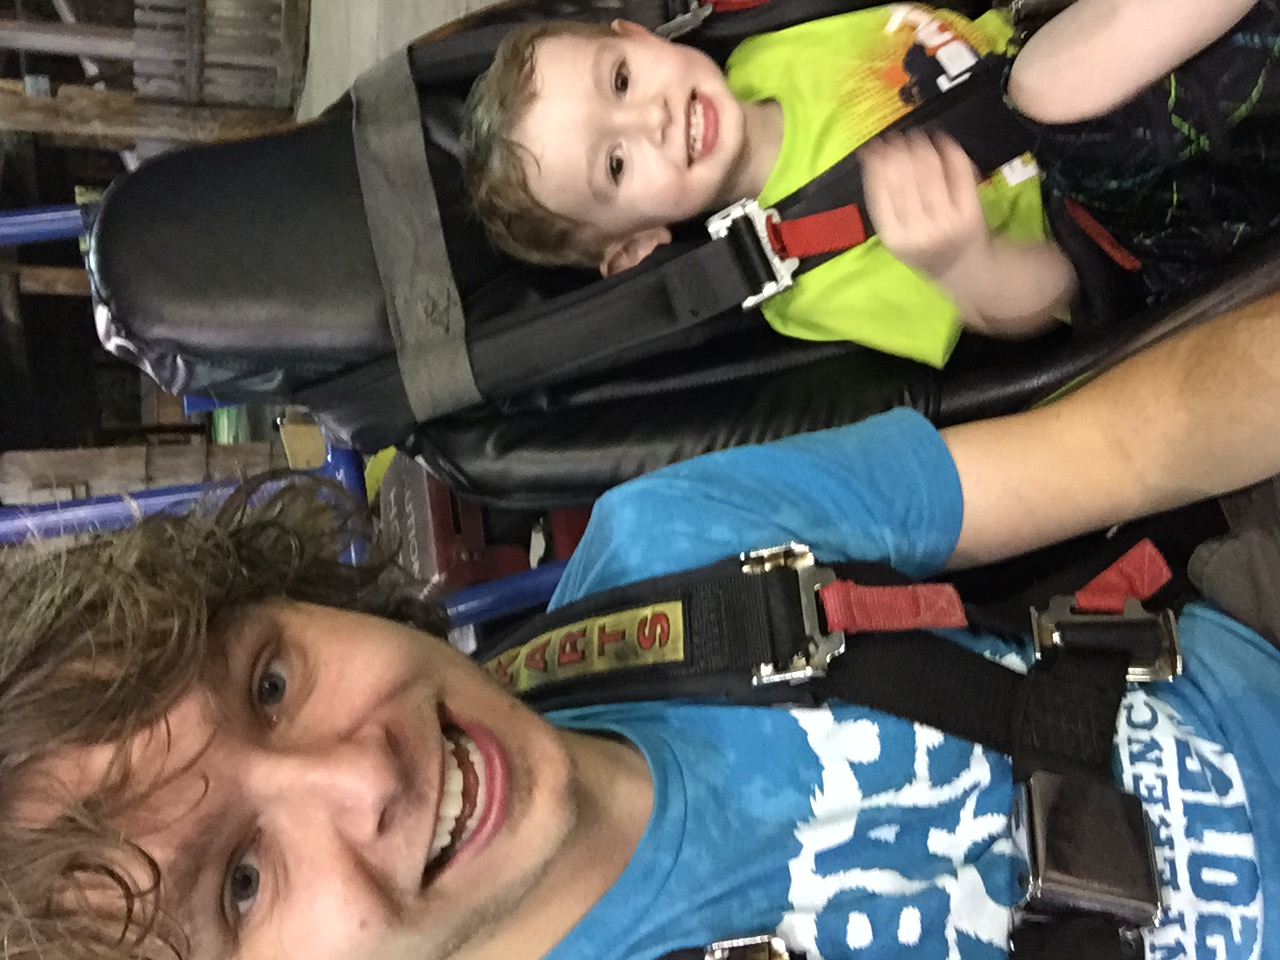 Aiden was my go-kart buddy! We're wet because we just finished playing bumper boats (Aiden's favorite).